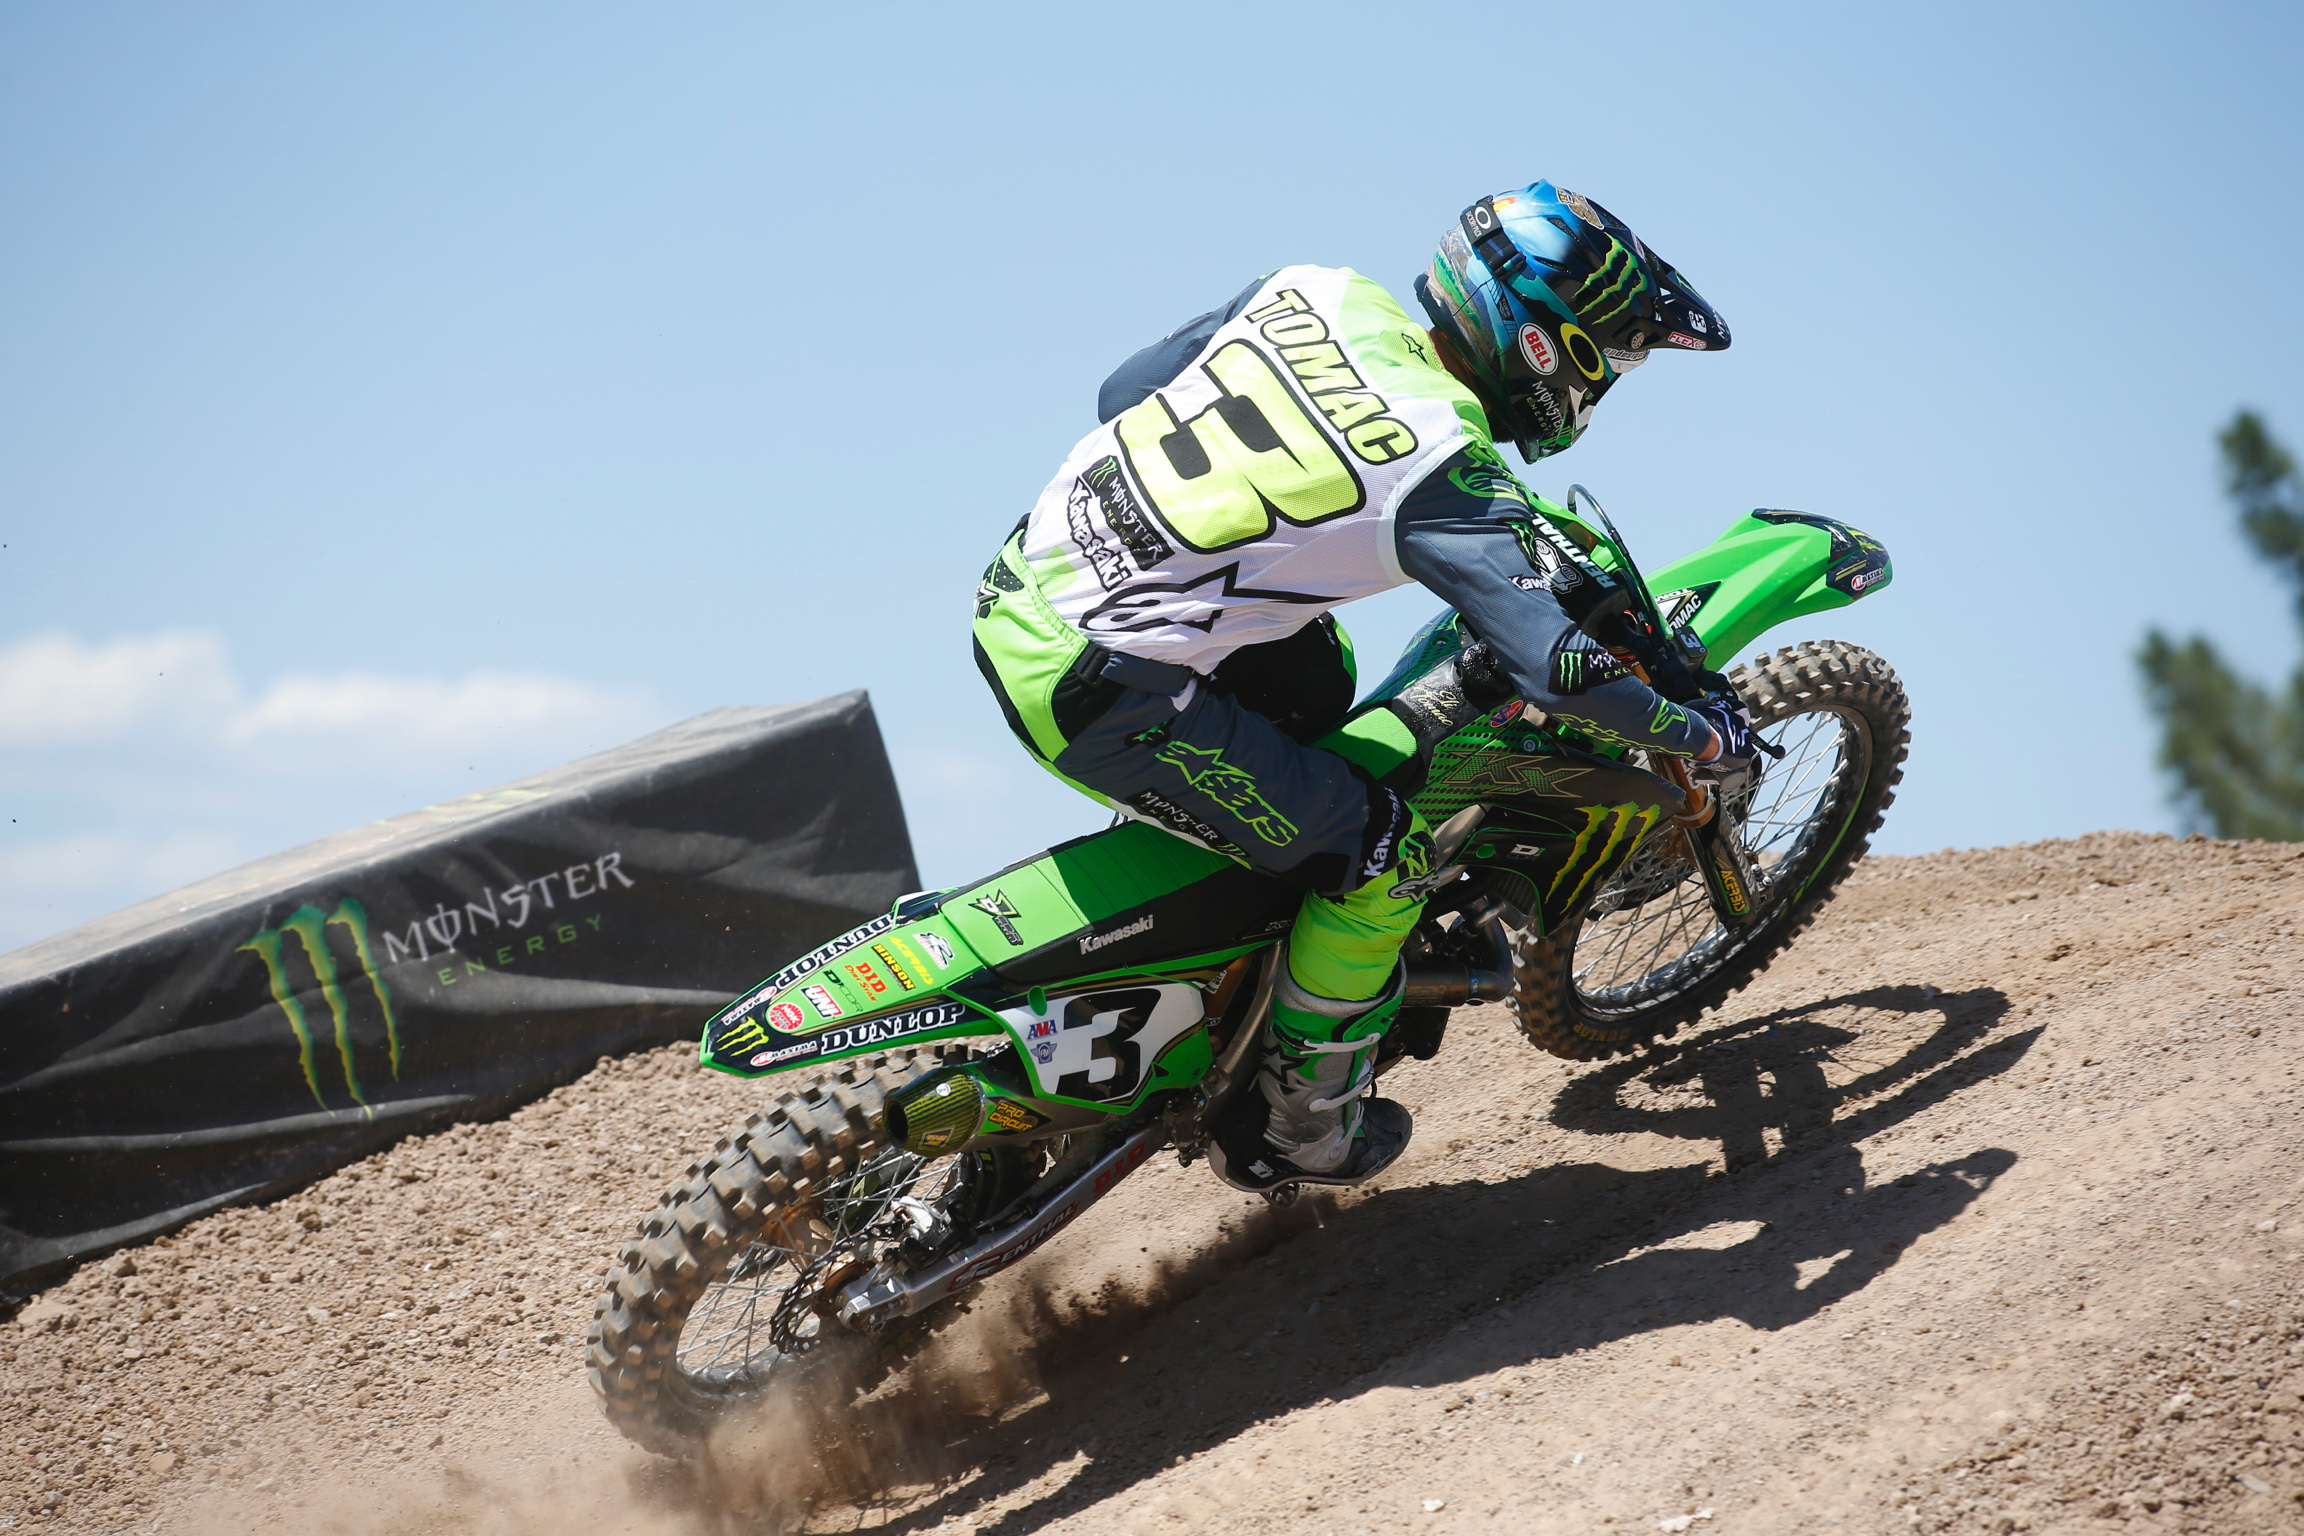 ARTICLE:05/05/2019: Monster Energy® Kawasaki's Eli Tomac